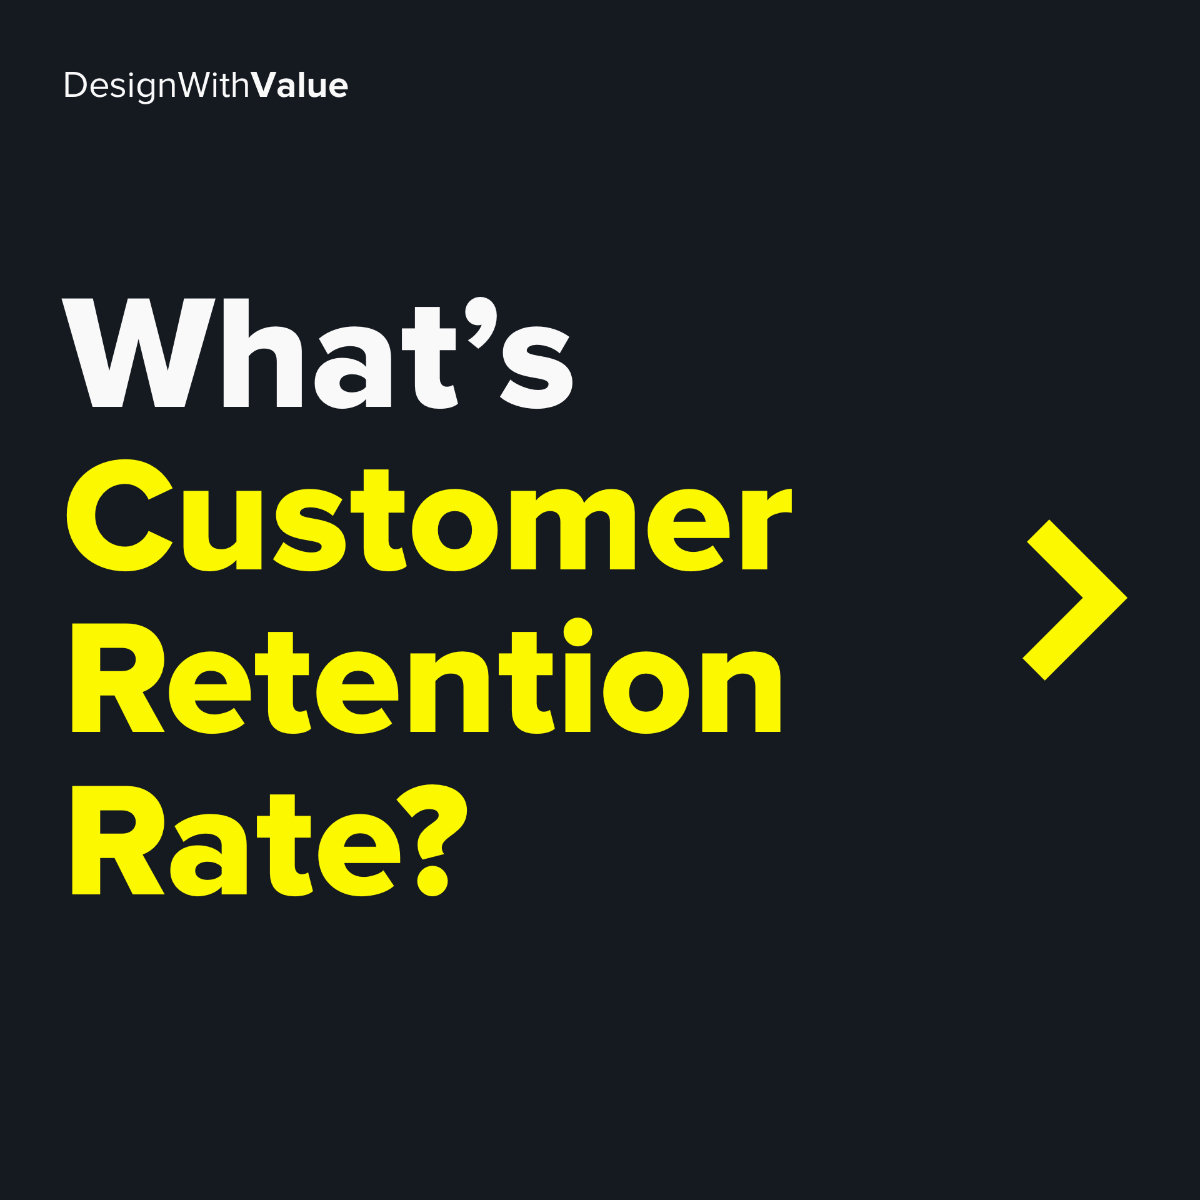 What's customer retention rate?